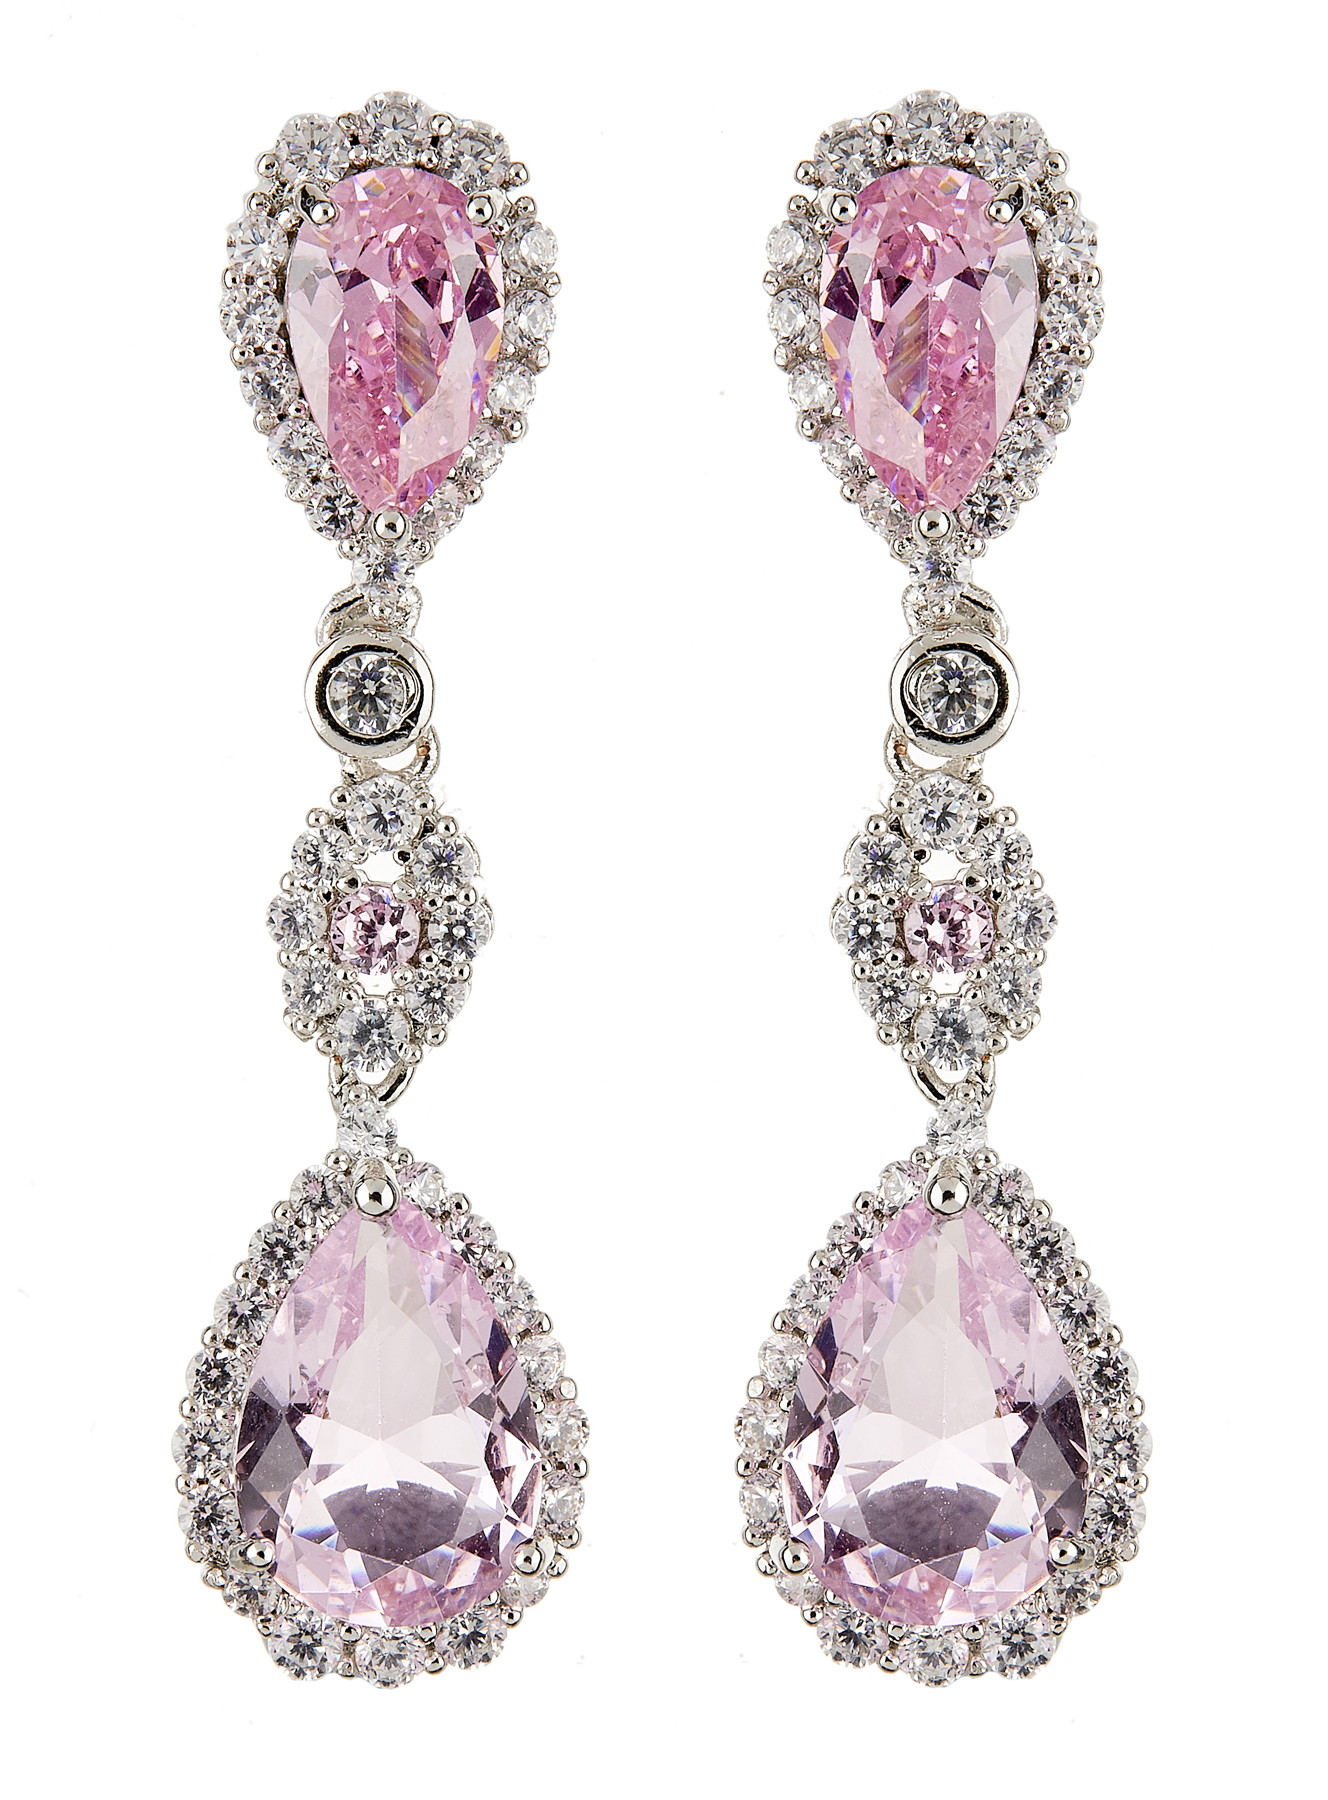 Clip On Earrings - Nata - silver dangle earring with cubic zirconia crystals and pink stones